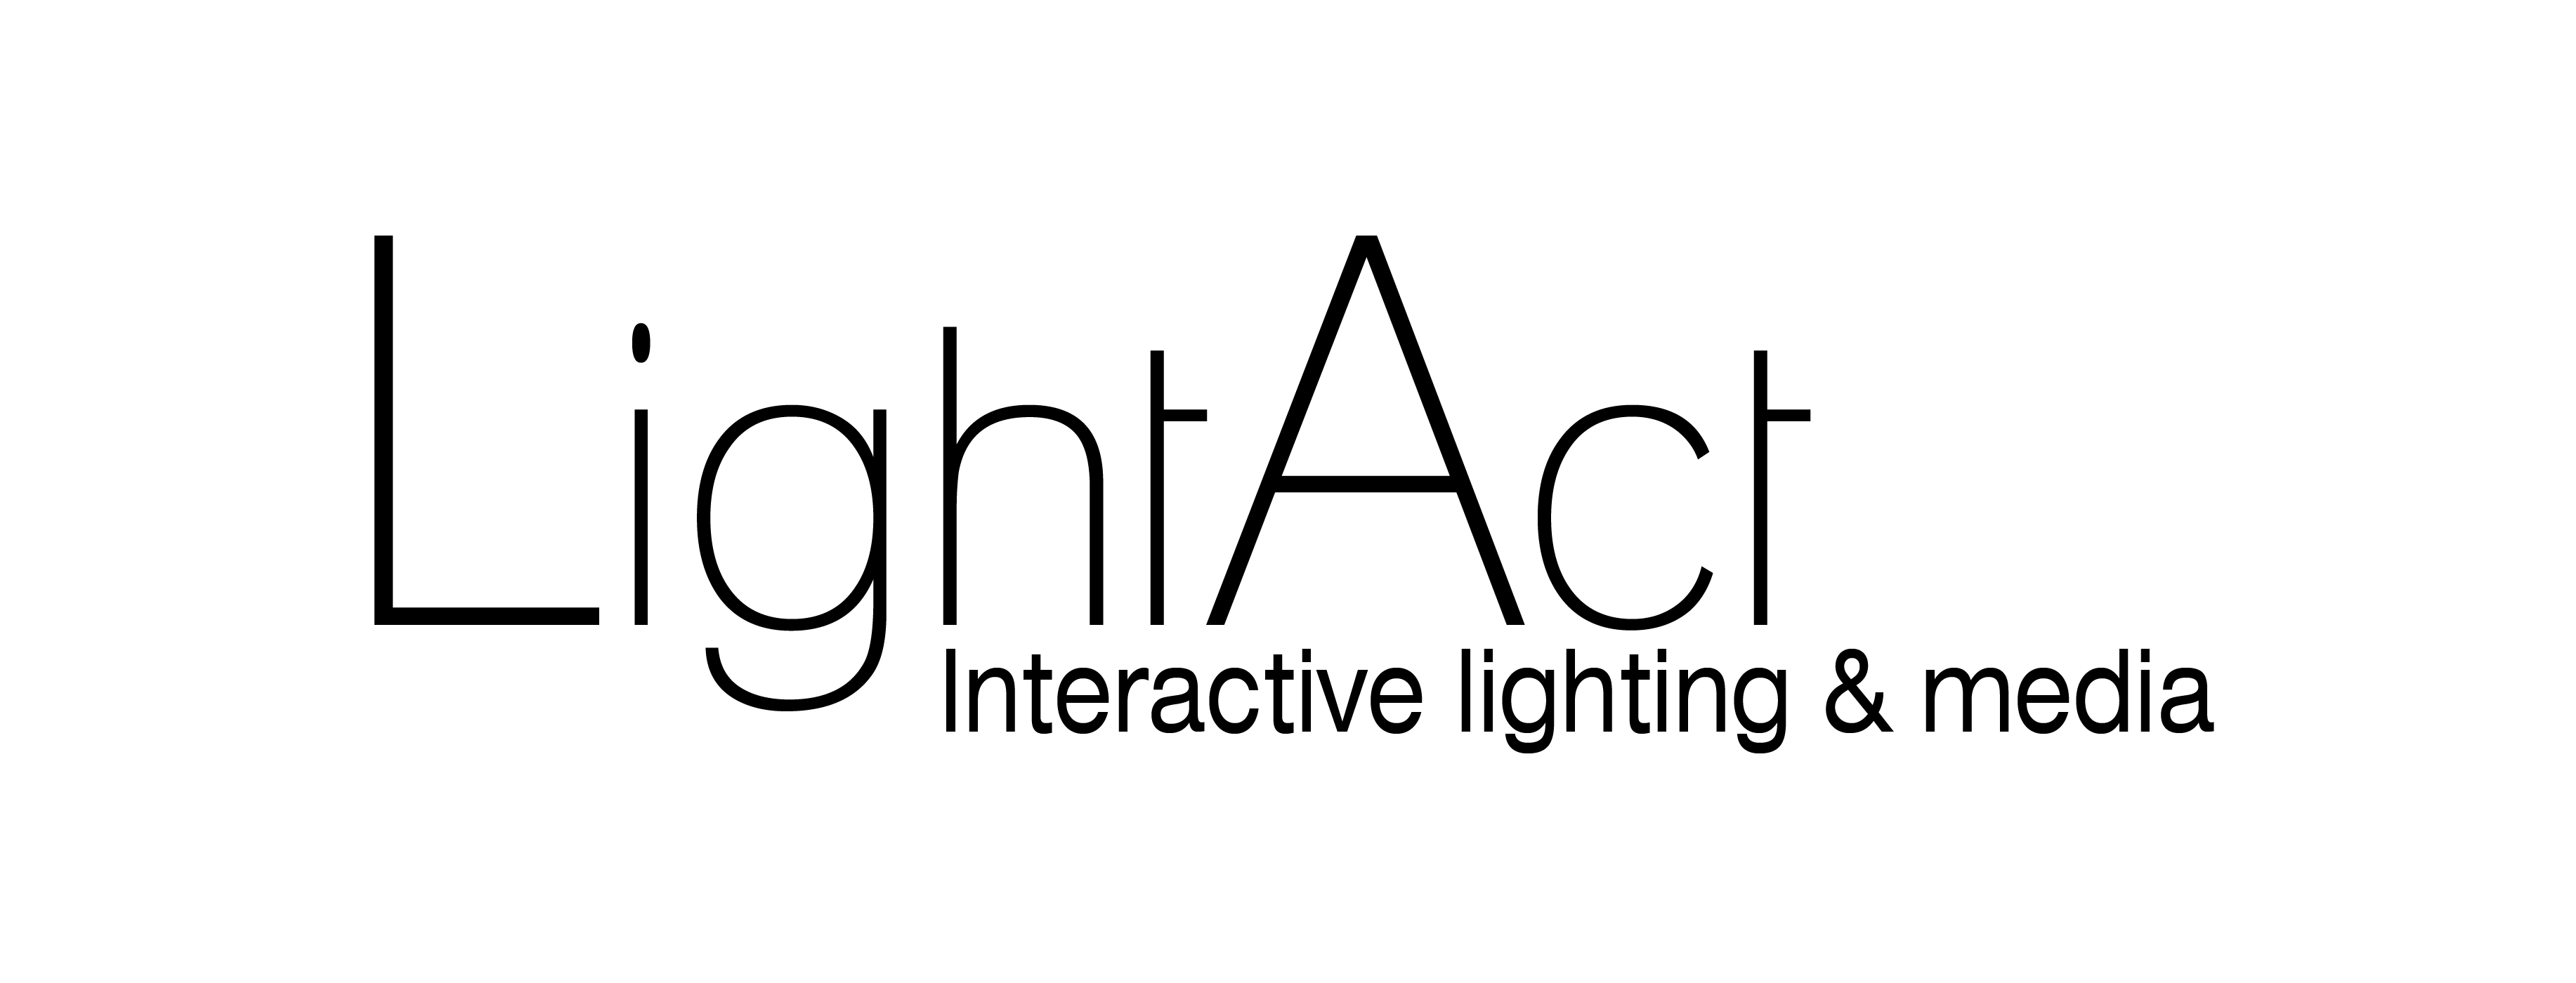 LightAct interactief